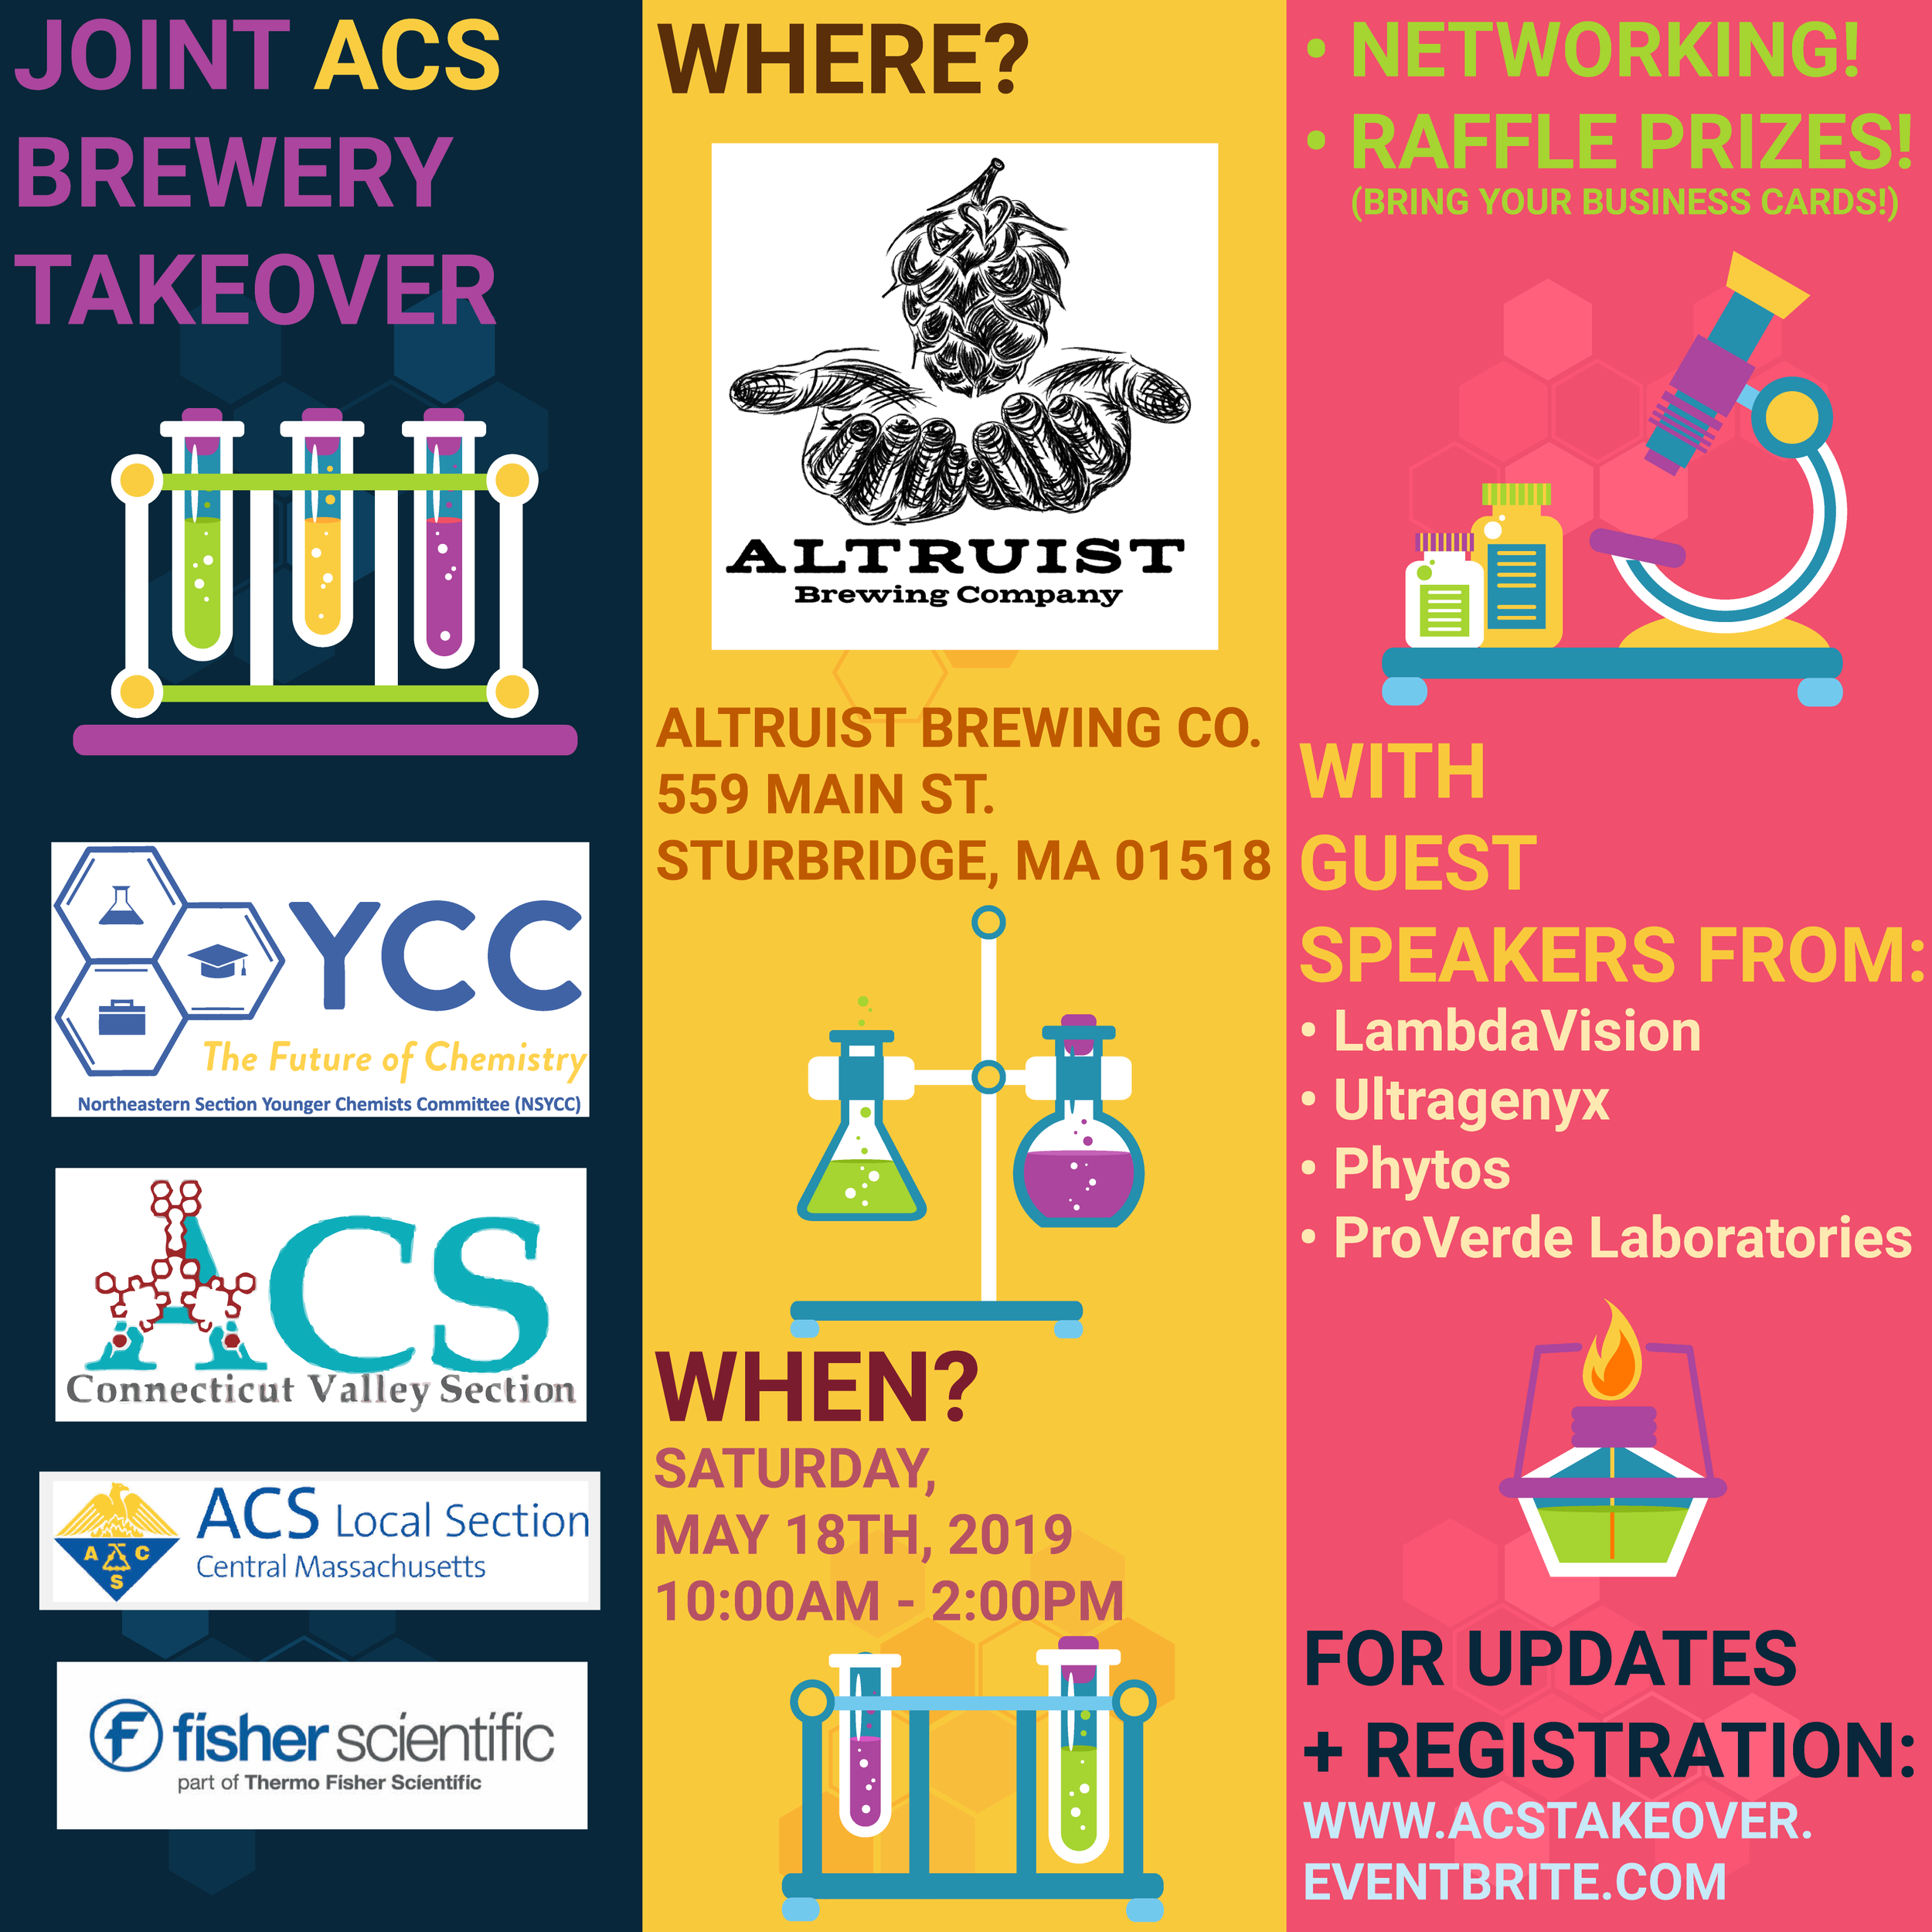 NSYCC Joint ACS Brewery Takeover B-01s.png